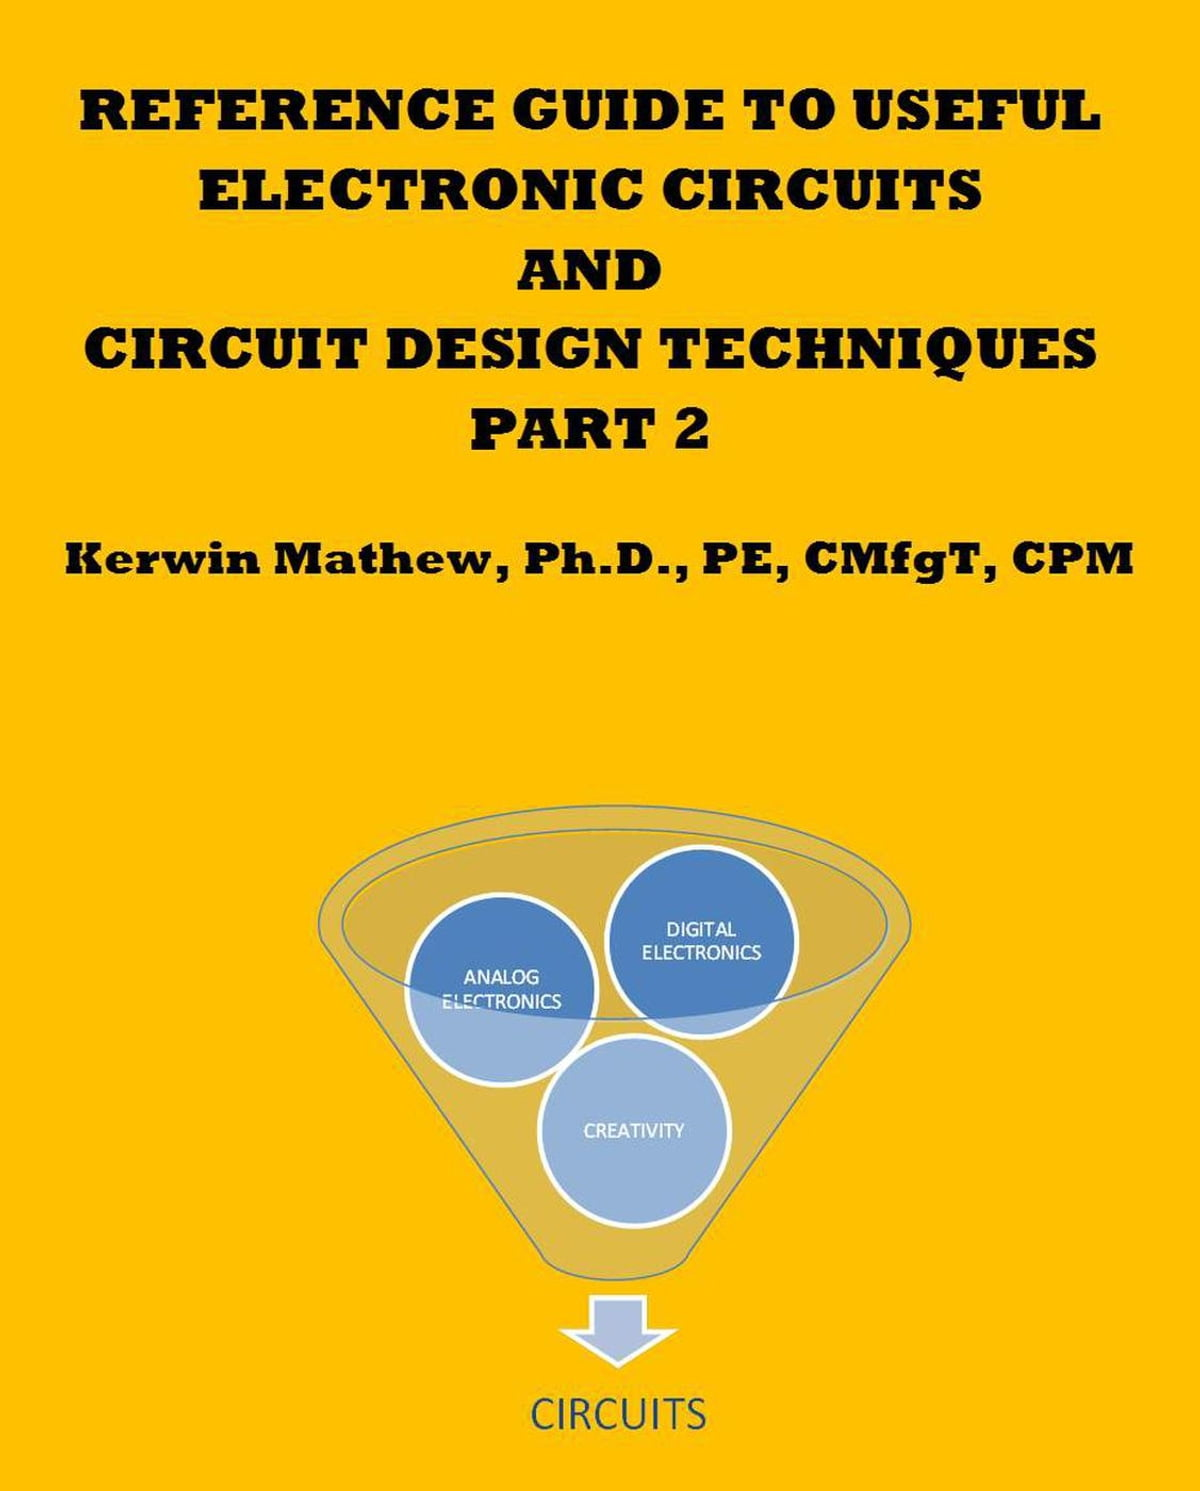 Reference Guide To Useful Electronic Circuits And Circuit Design Techniques Part 2 Ebook By Kerwin Mathew 9781498961684 Rakuten Kobo